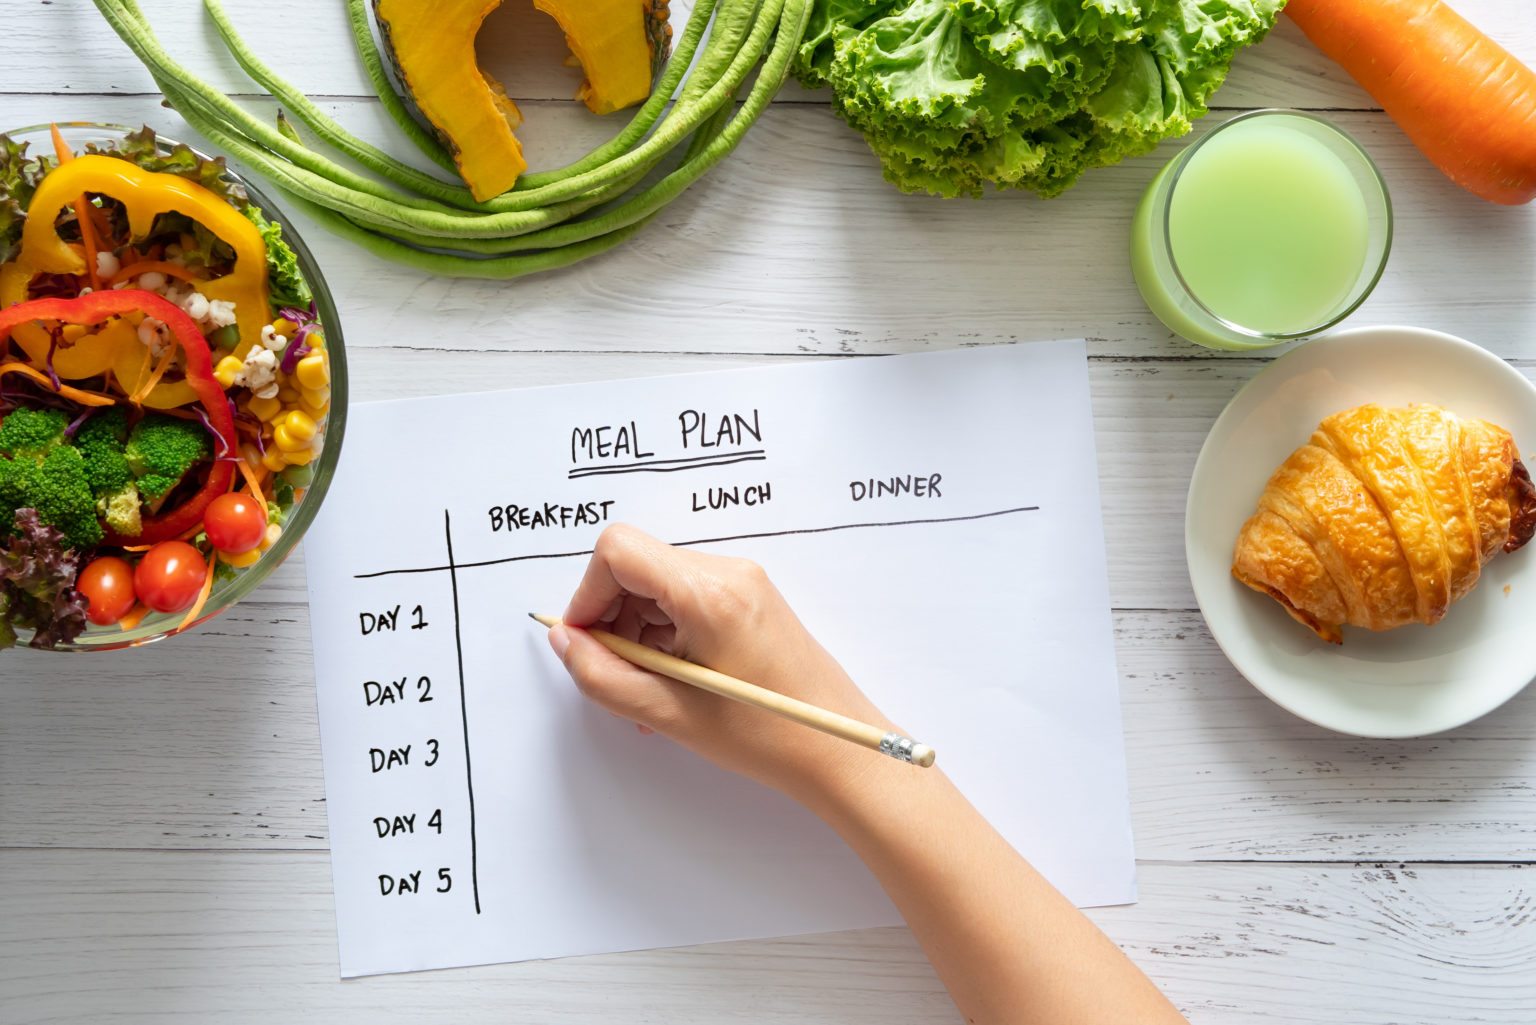 Having a weekly plan can help reduce food waste